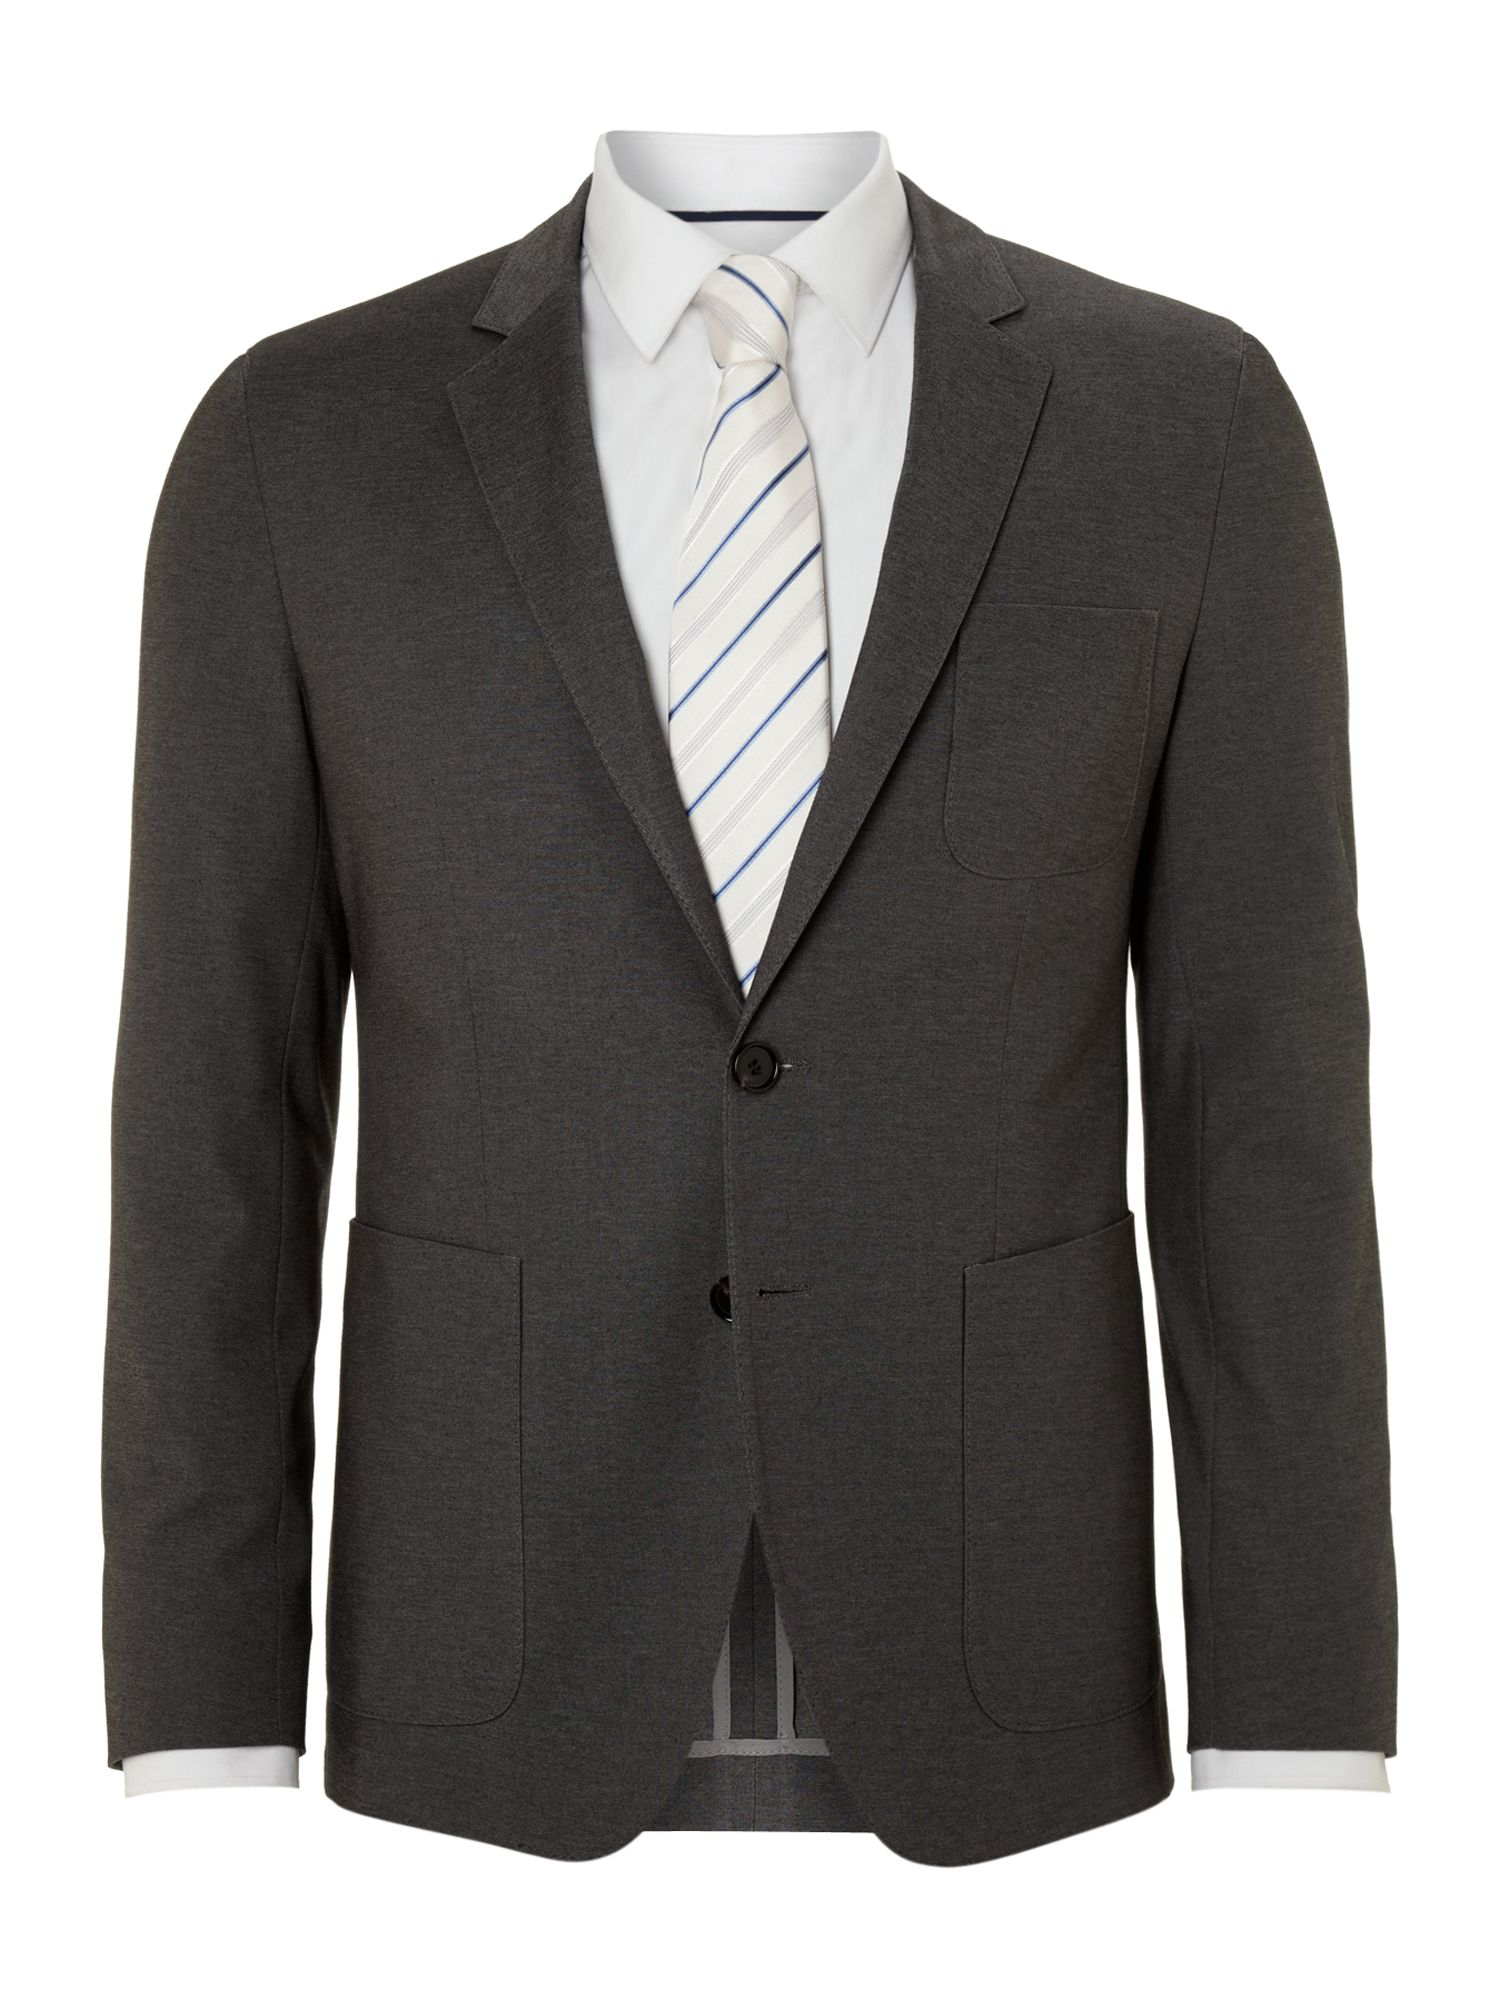 Jersey patch pocket suits